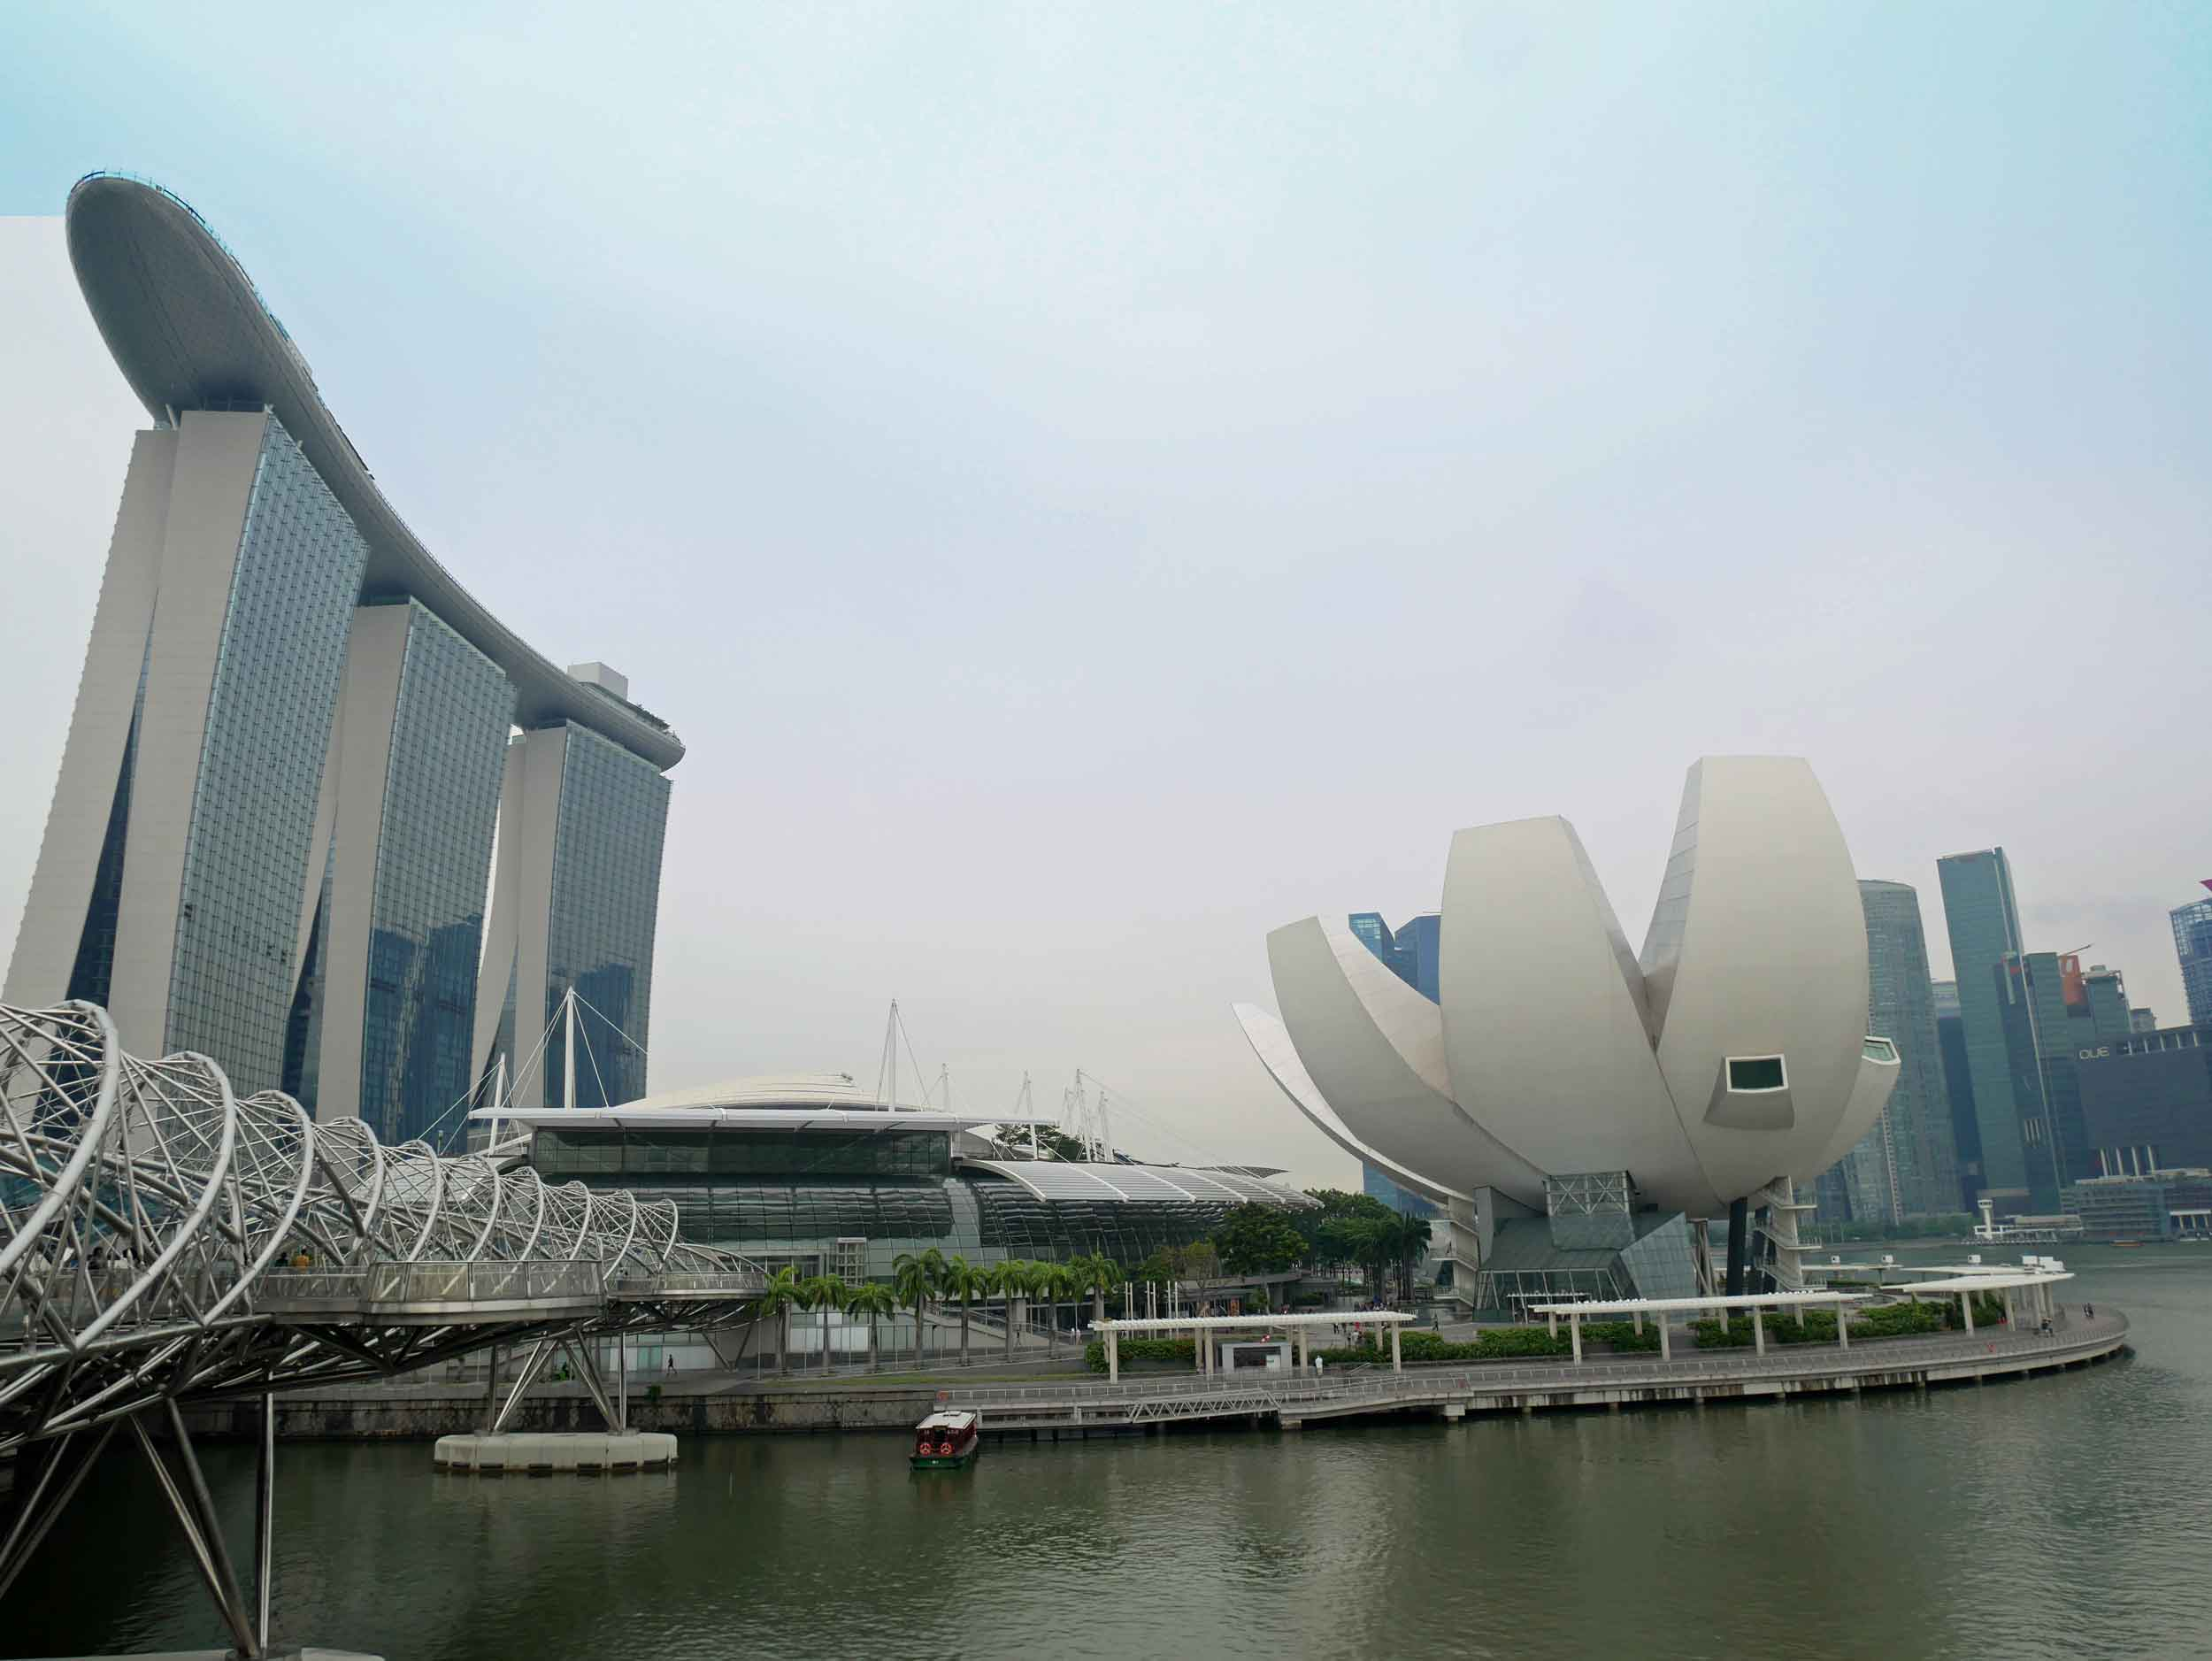 Another look at impressive Marina Bay Sands with the Singapore ArtScience Museum in the foreground.